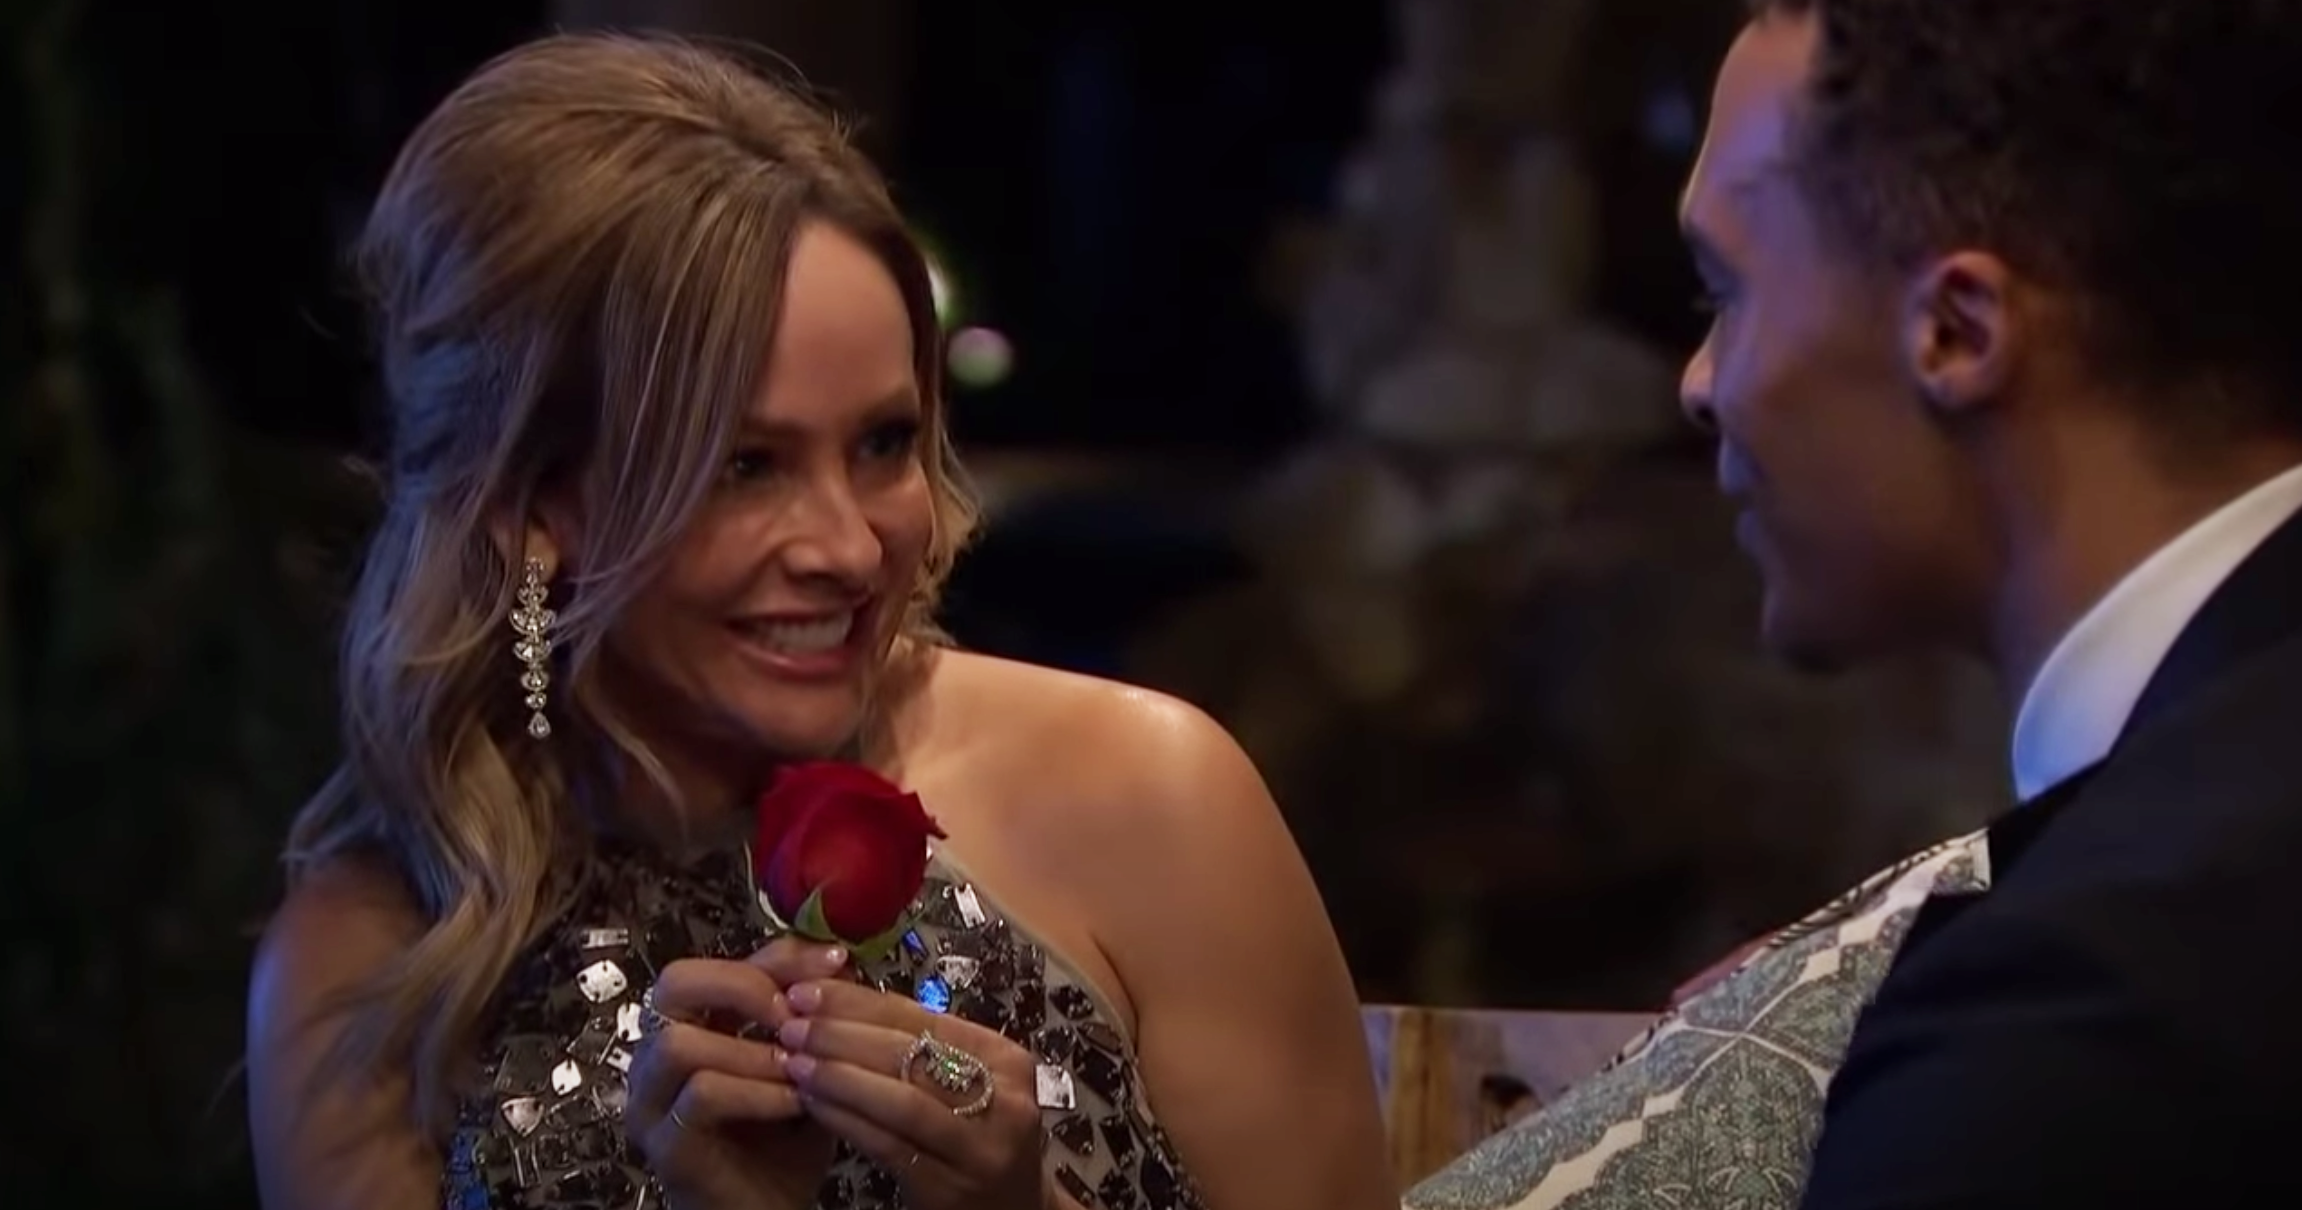 Clare smiles as she offers Dale the rose